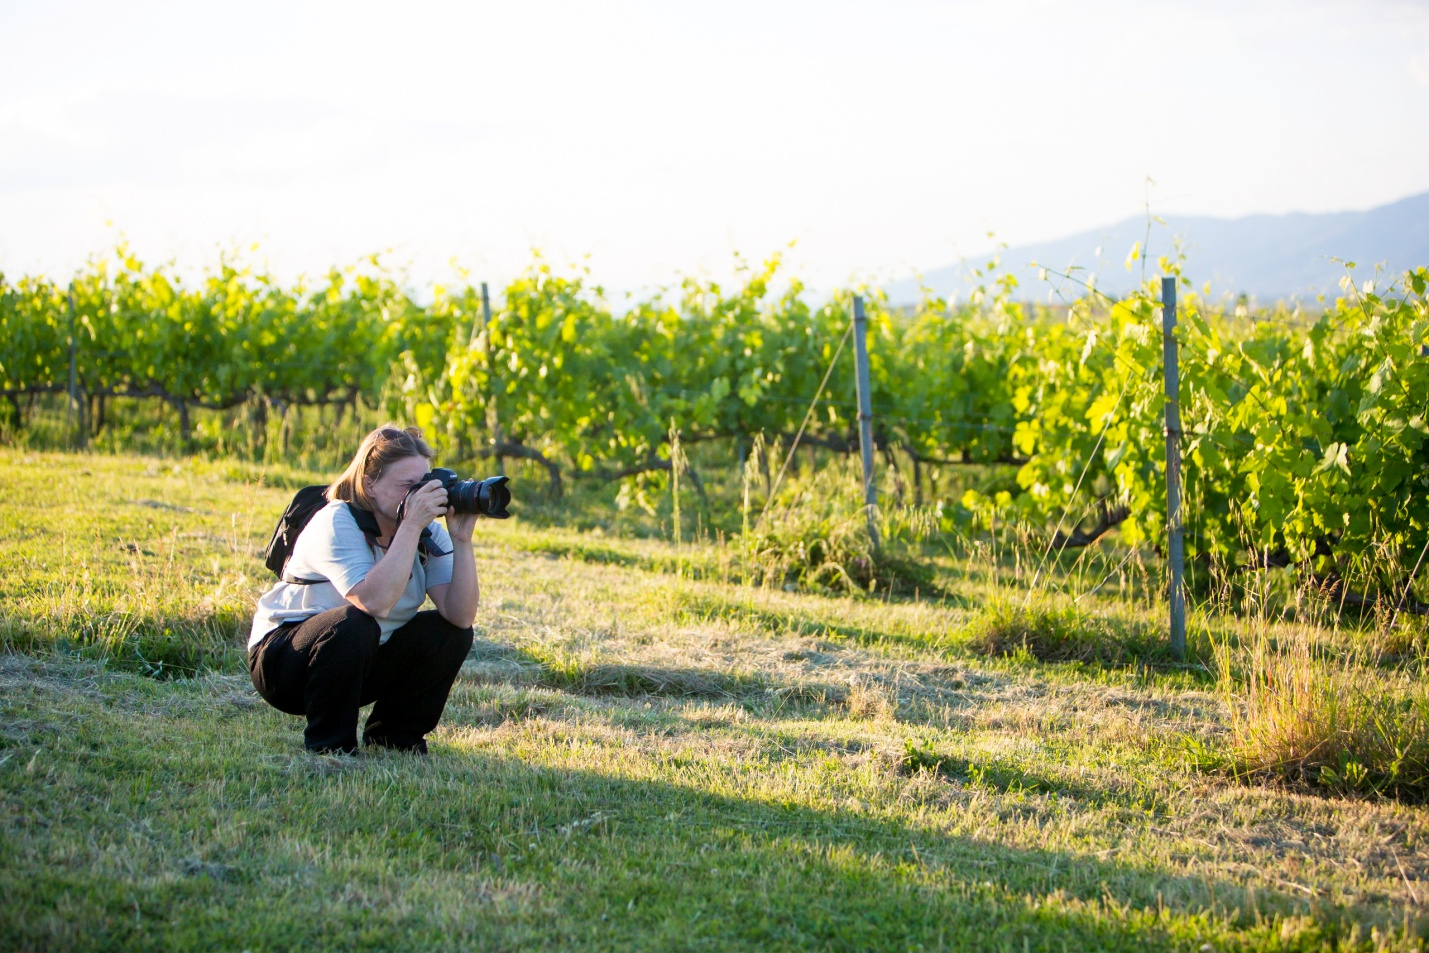 Photography vacation in tuscany 2